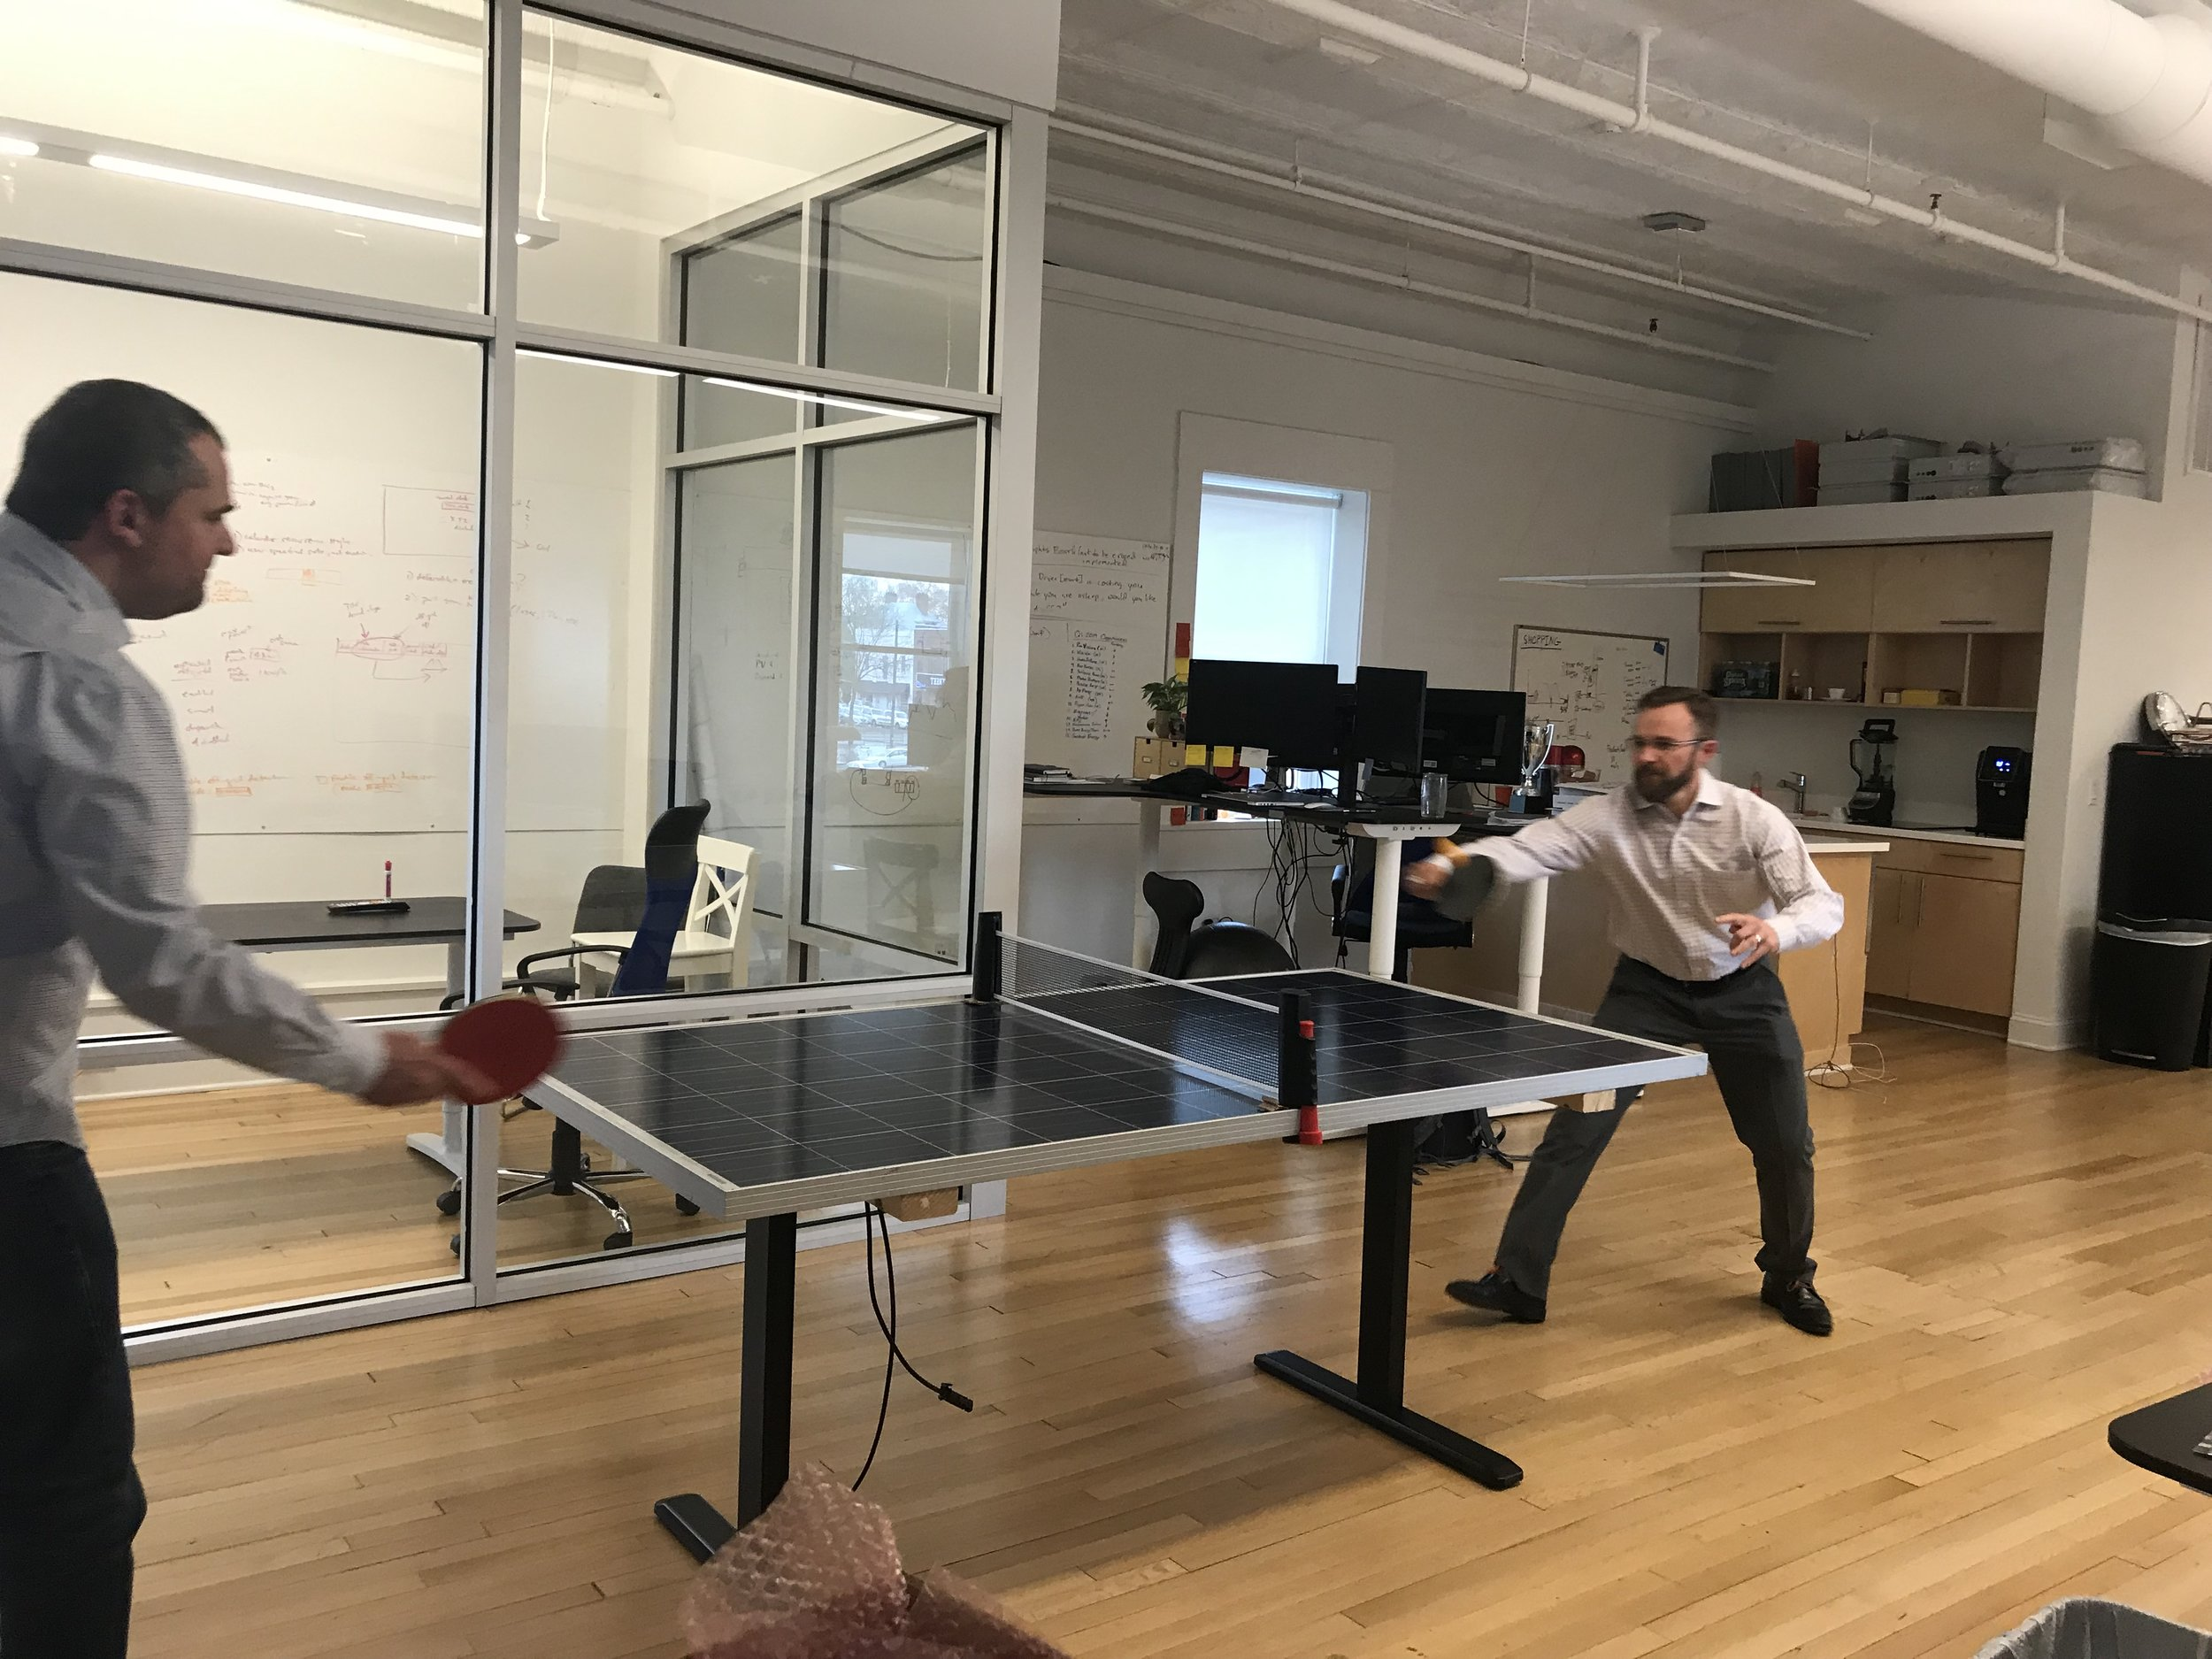 A game of SolarPong at the Lumin Office